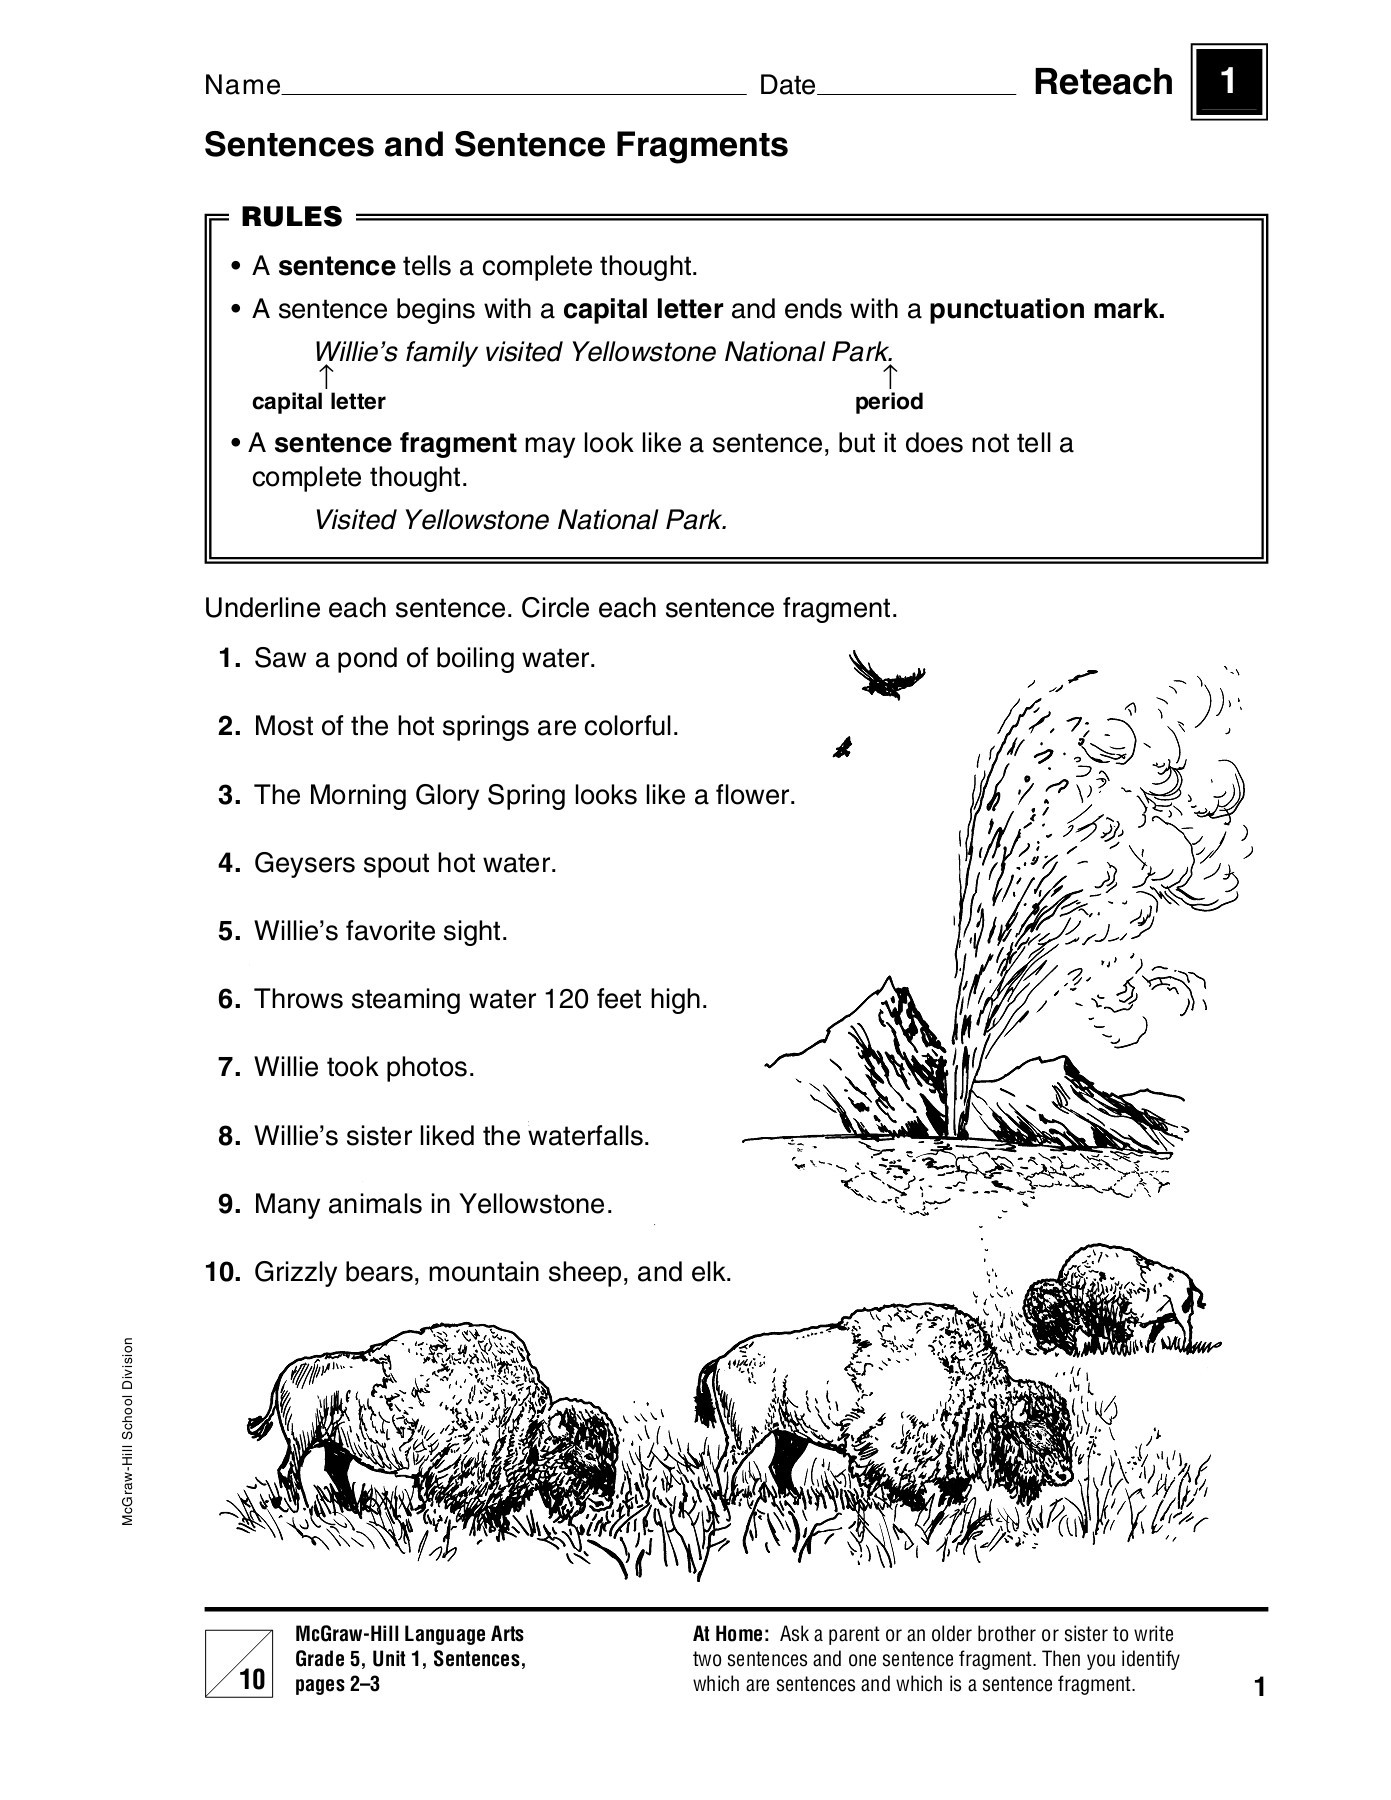 hight resolution of Sentences and Sentence Fragments - Macmillan/McGraw-Hill Pages 1 - 50 -  Flip PDF Download   FlipHTML5